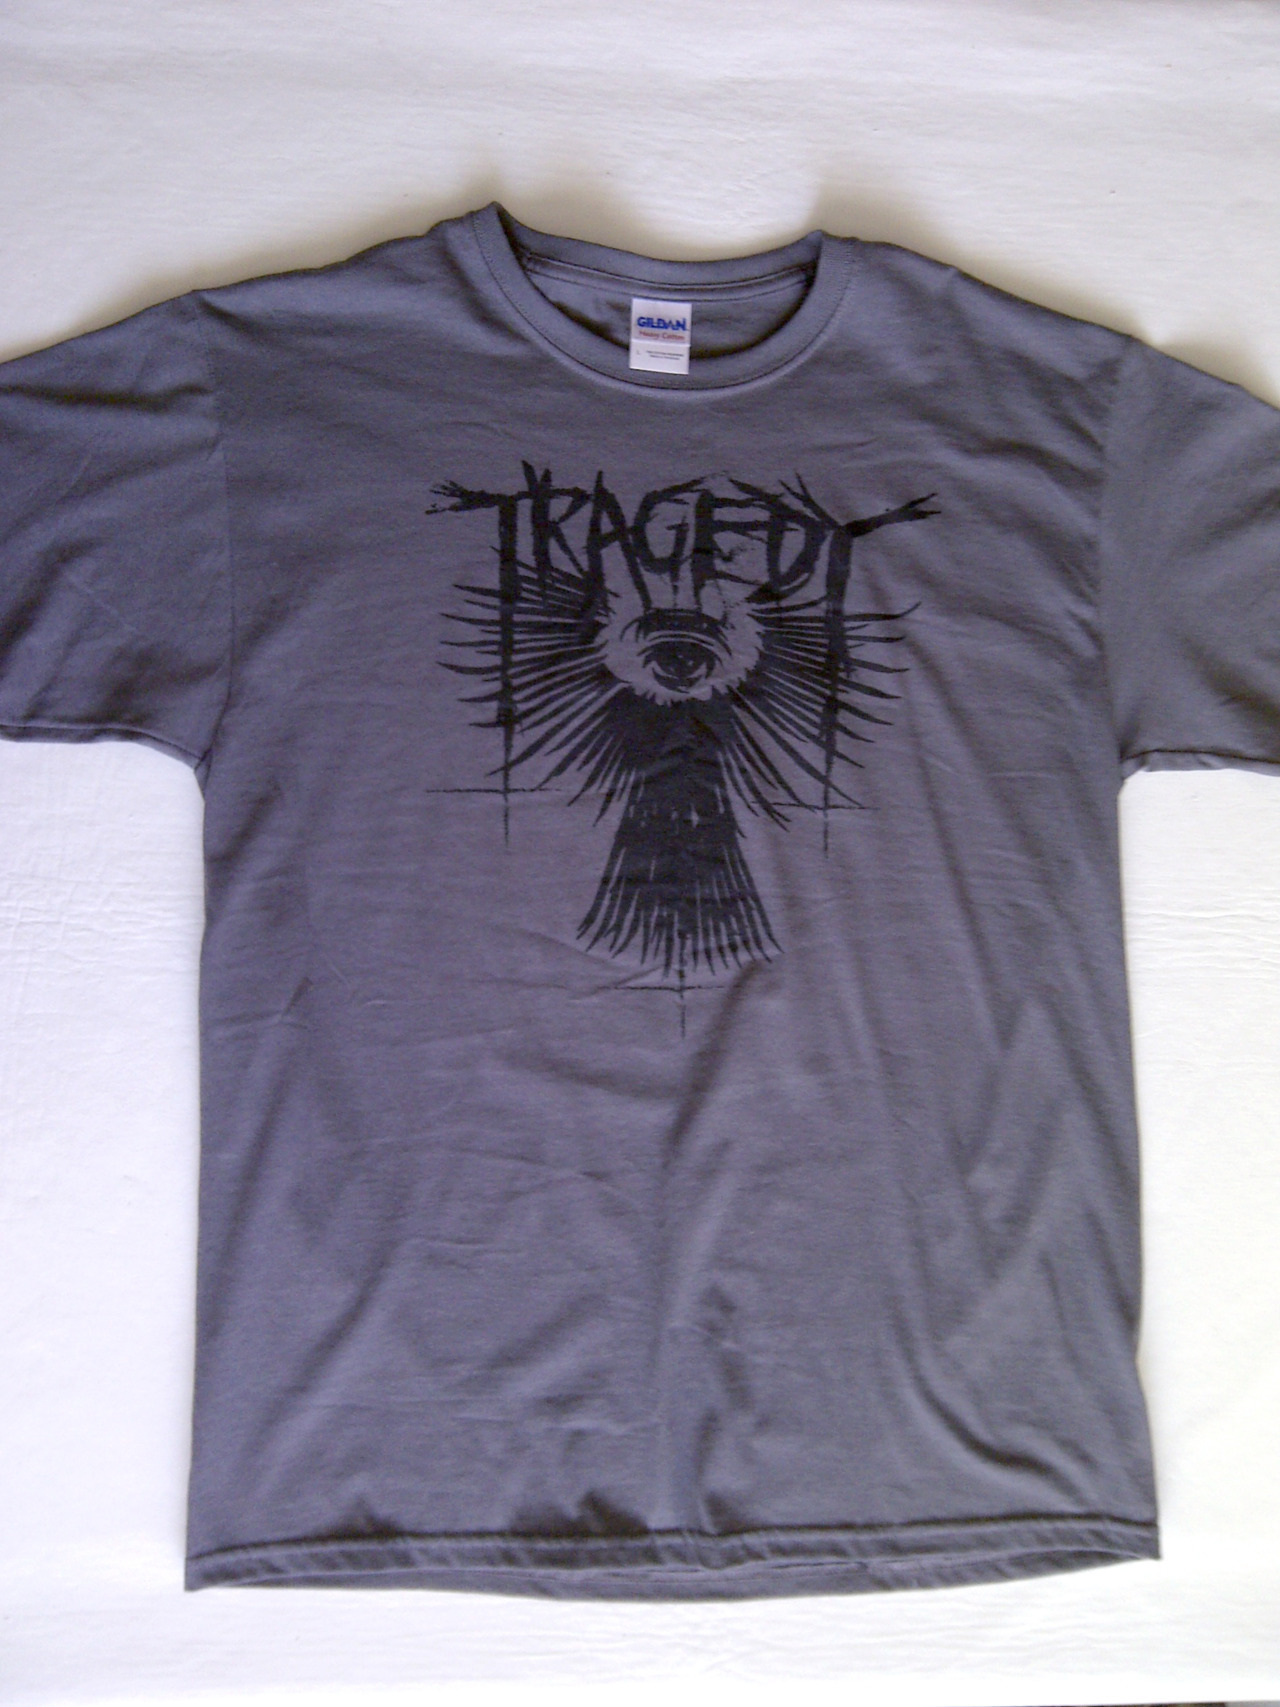 Tragedy Sz L New 10€ botedge@gmail.com